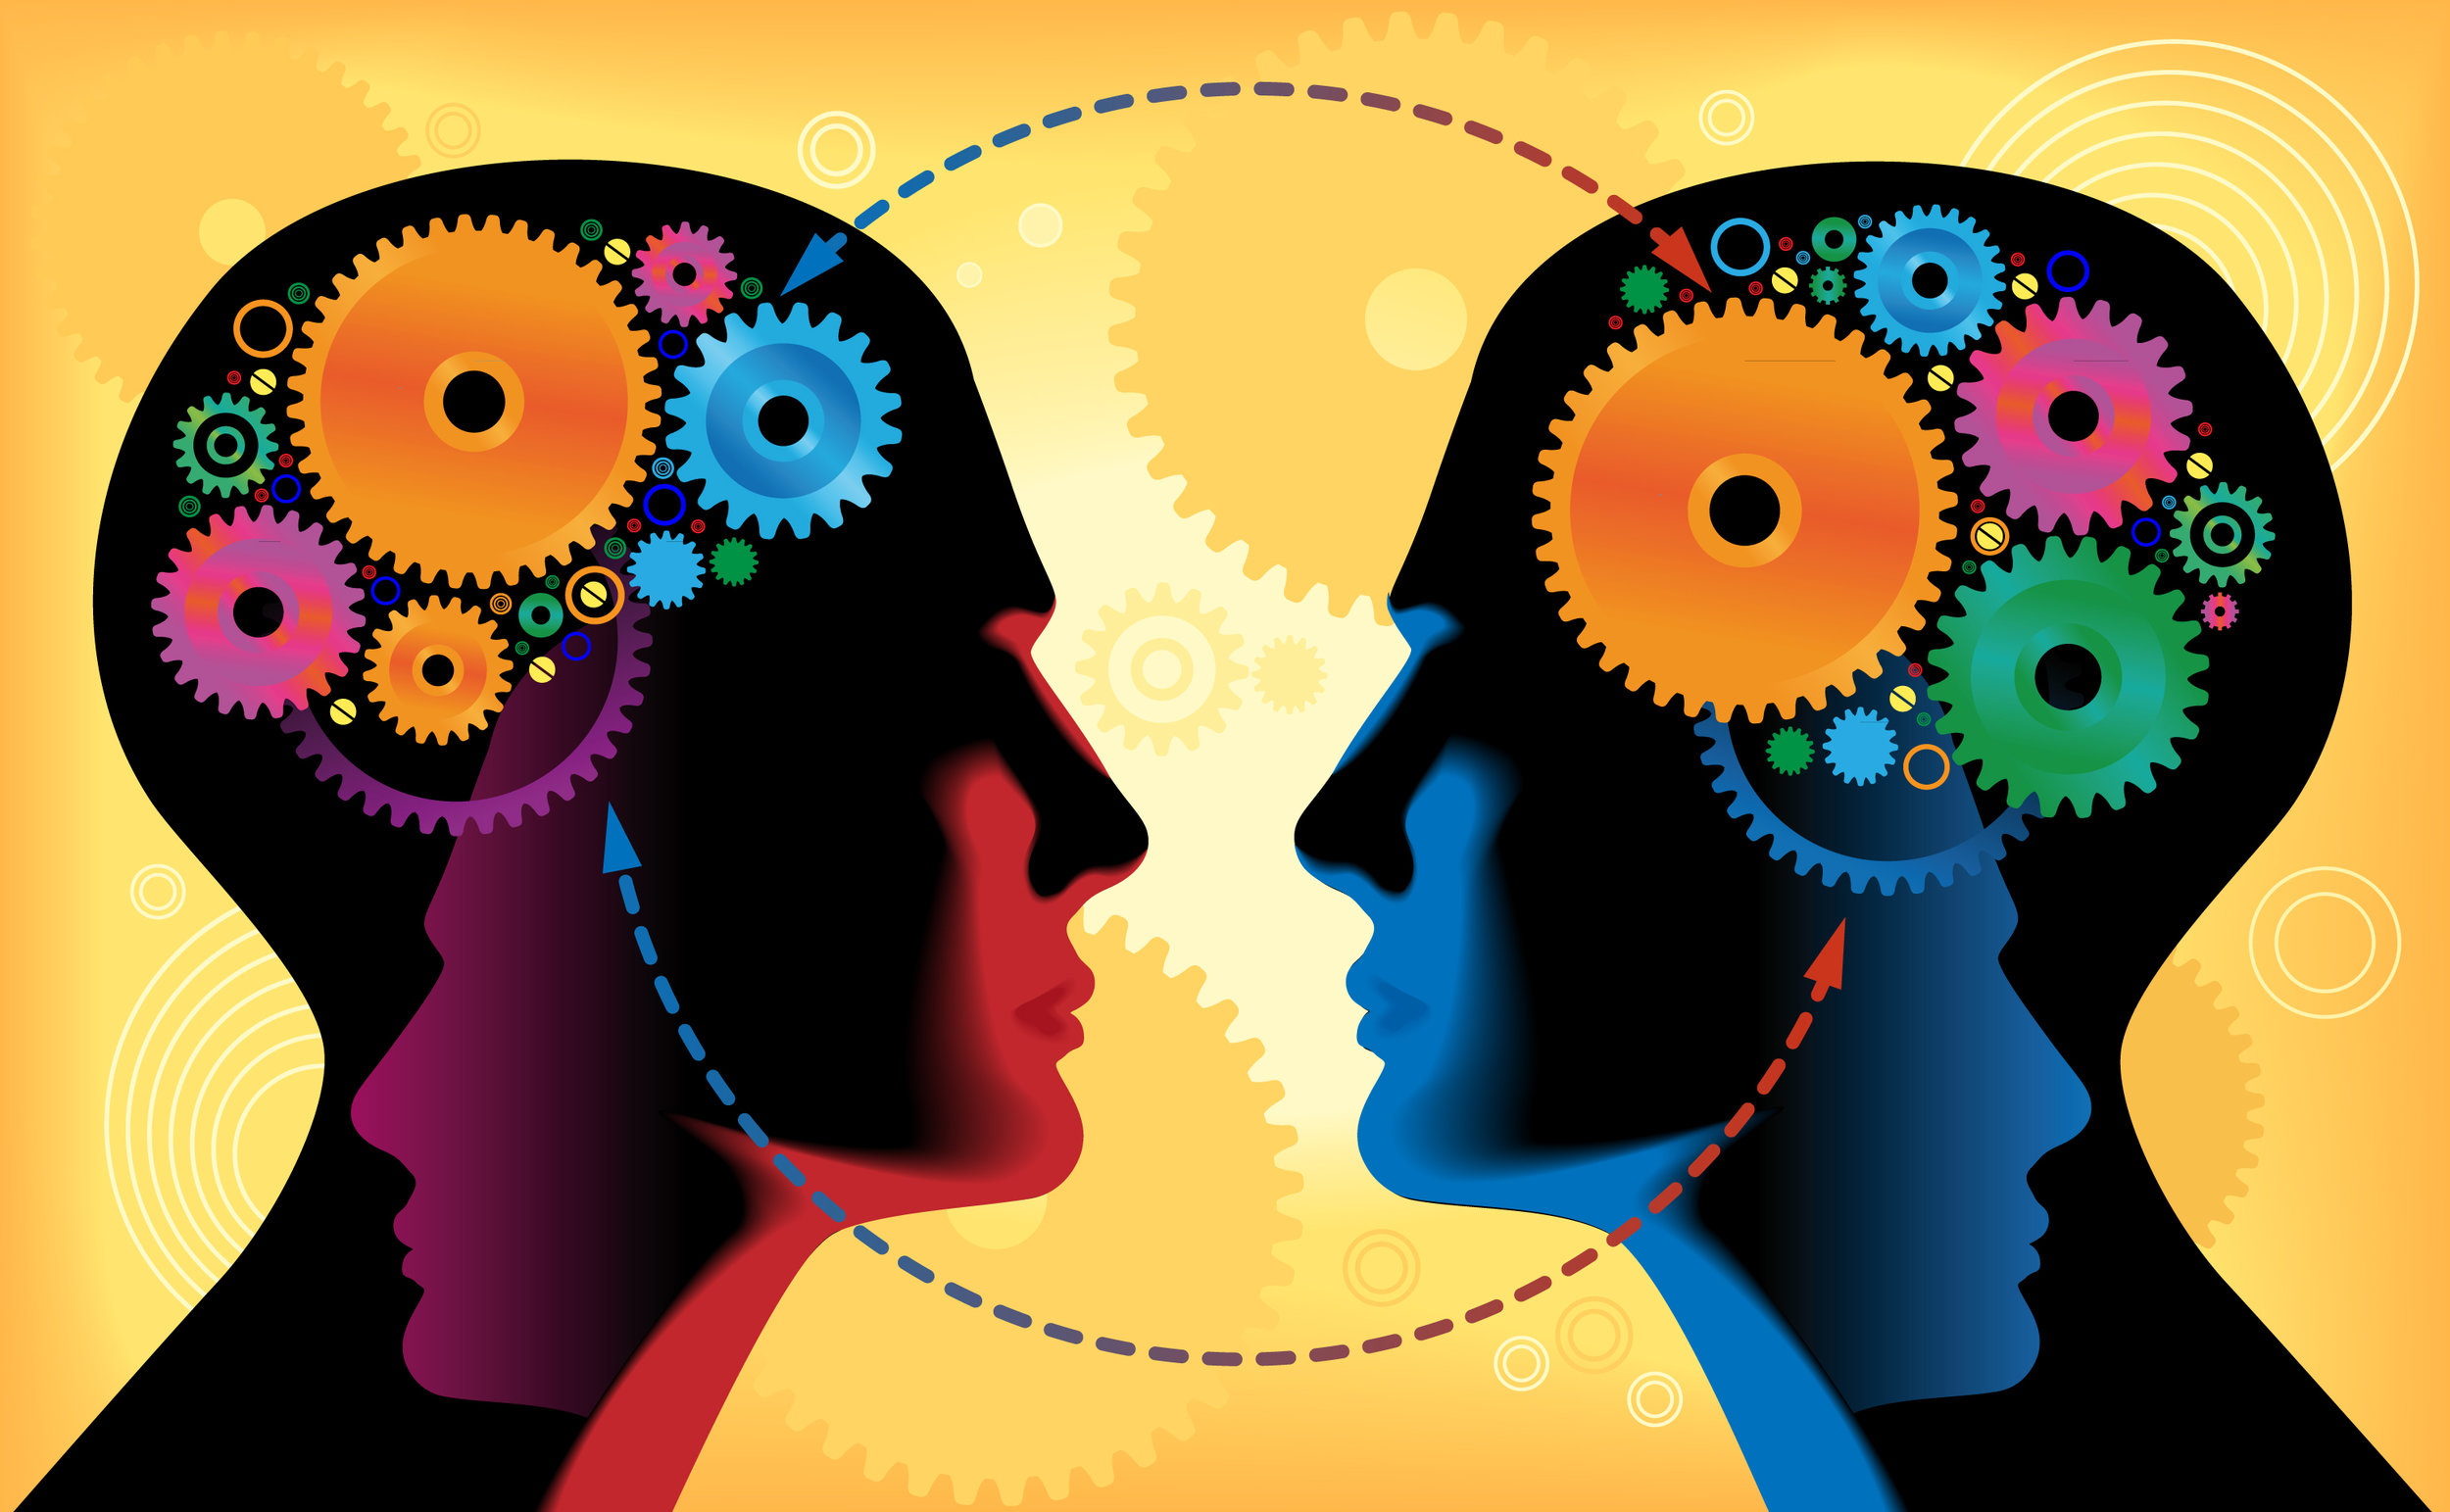 Empathy as mutual cognition